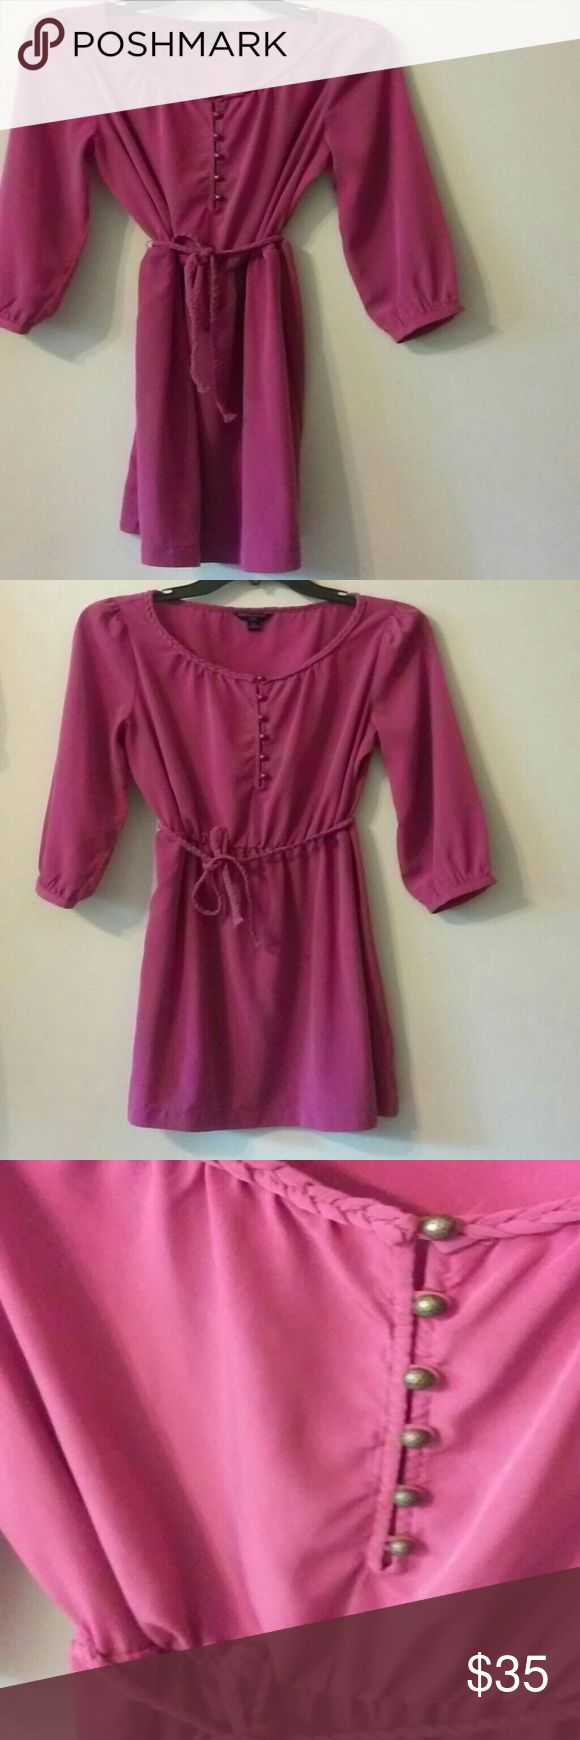 Banana republic factory dress This fushica pink dress  with a tie waist. It has 6 buttons that hook on at the top. It is an 8 petite size dress from the spring of 2012 as pictured. The dress is in great condition the only problem is the right side belt loop is broken you could re sew it or cut it off completely and still tie the belt at your hips without the loops. Price is negotiable. Banana Republic Dresses